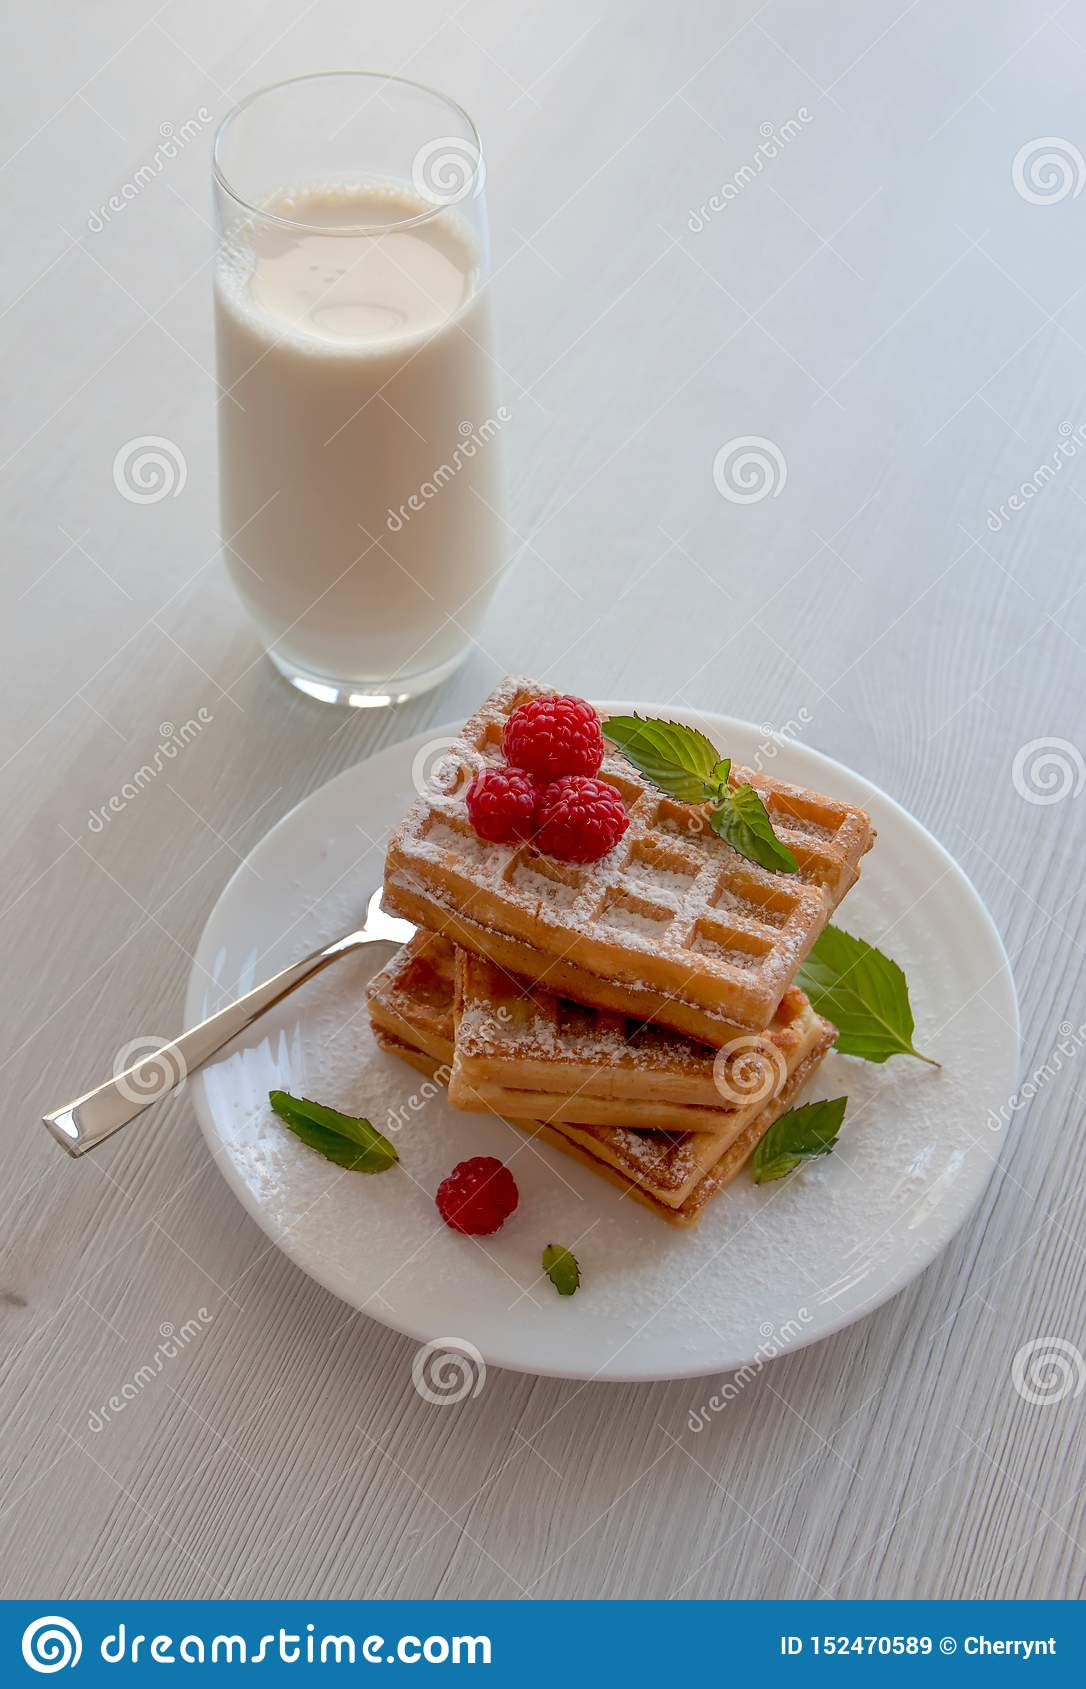 Soft waffles with raspberries and a glass of milk, on a white background